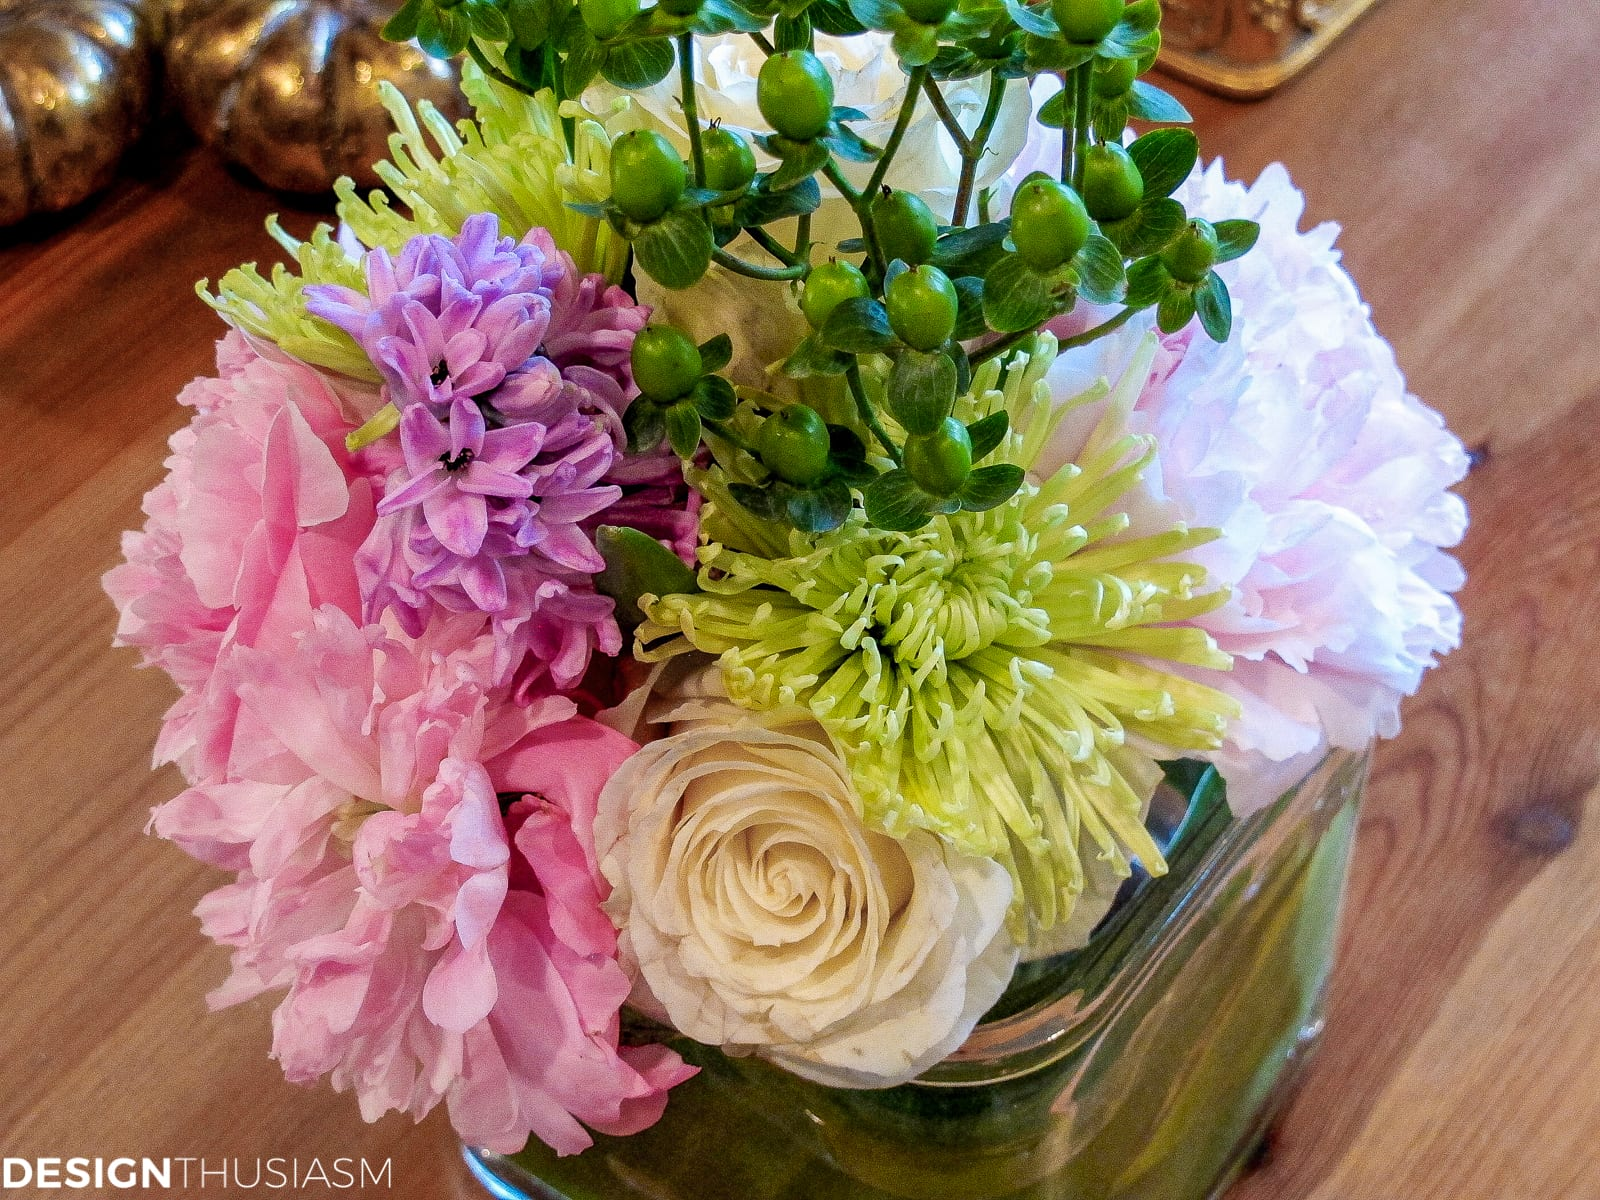 DIY flower arrangements - designthusiasm.com